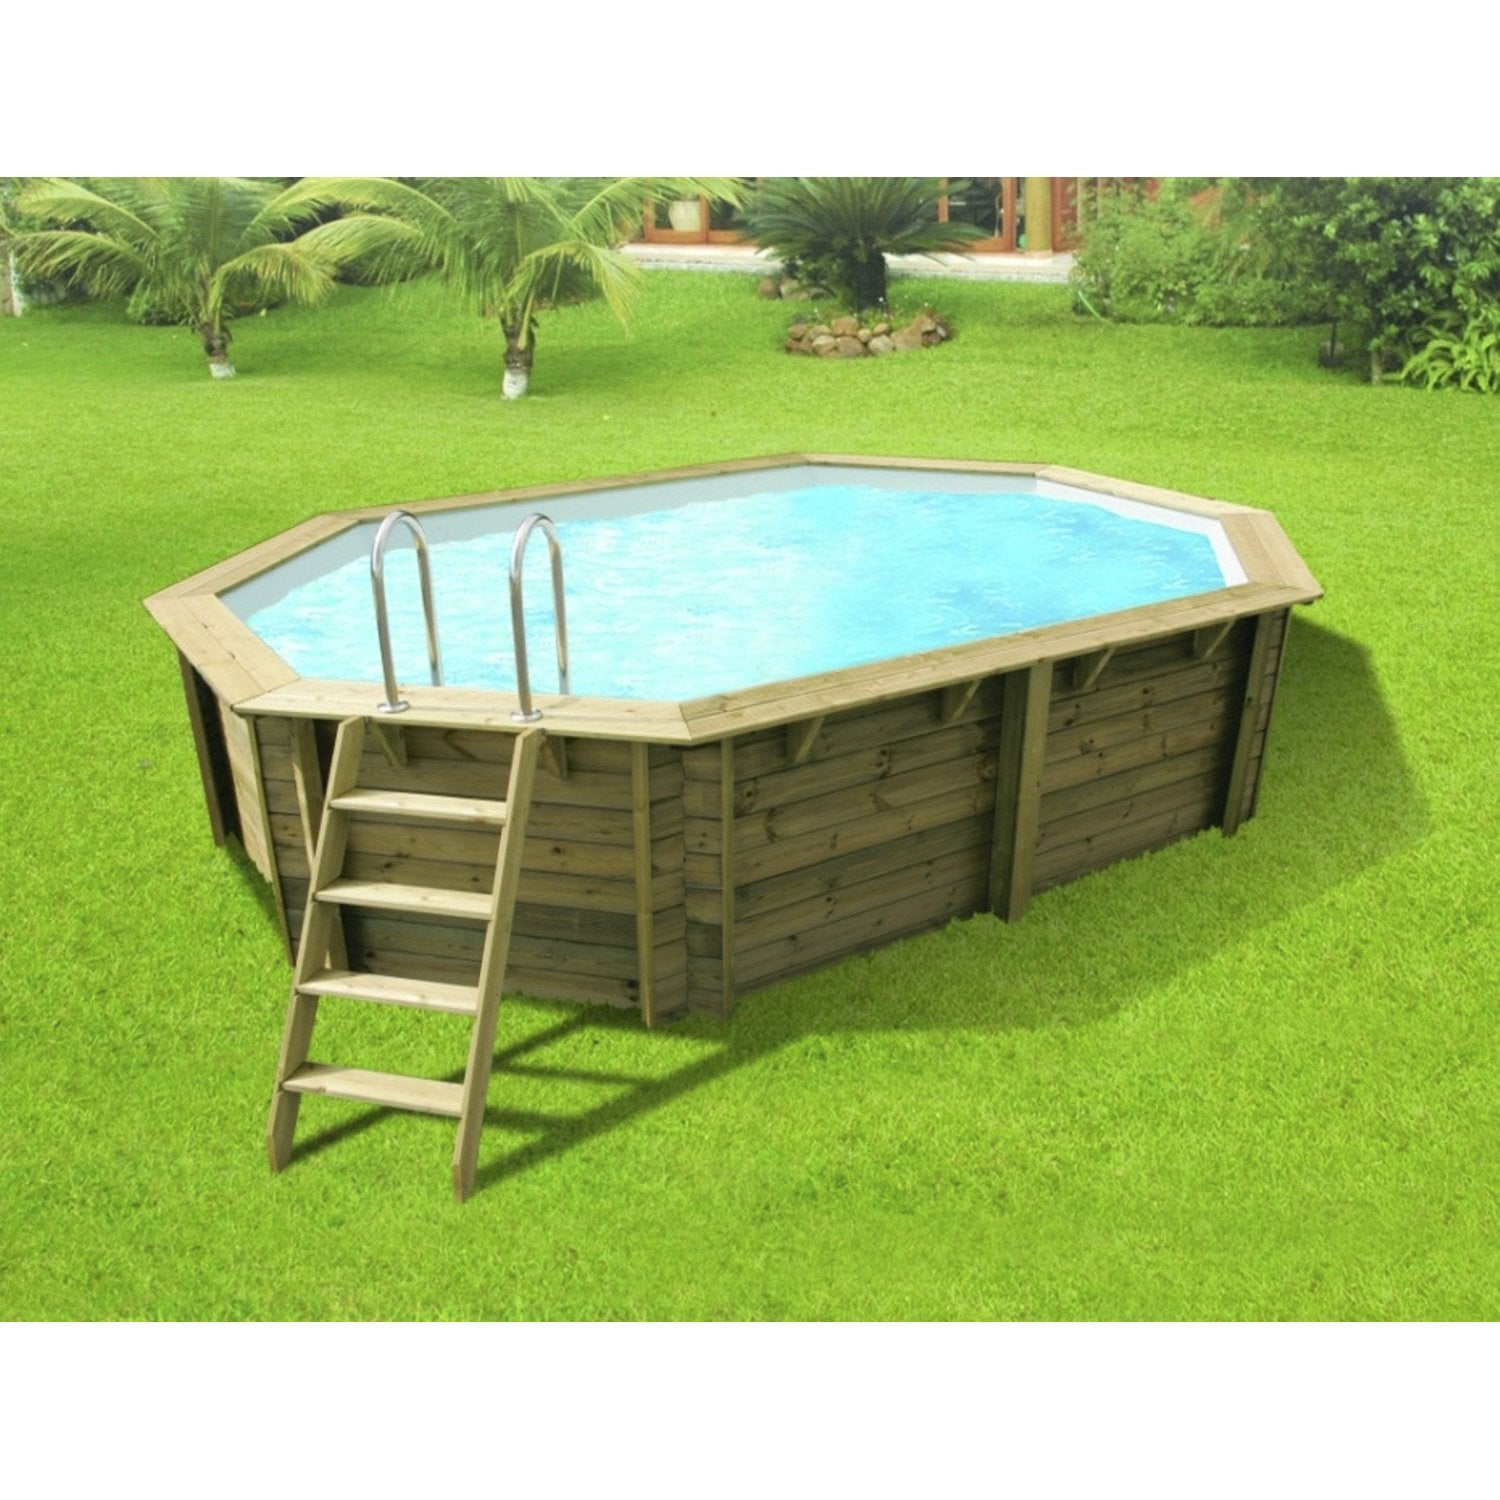 Piscine hors sol bois athena xl diam 6 1 l 6 1 x l 4 x h for Piscine hors sol legislation